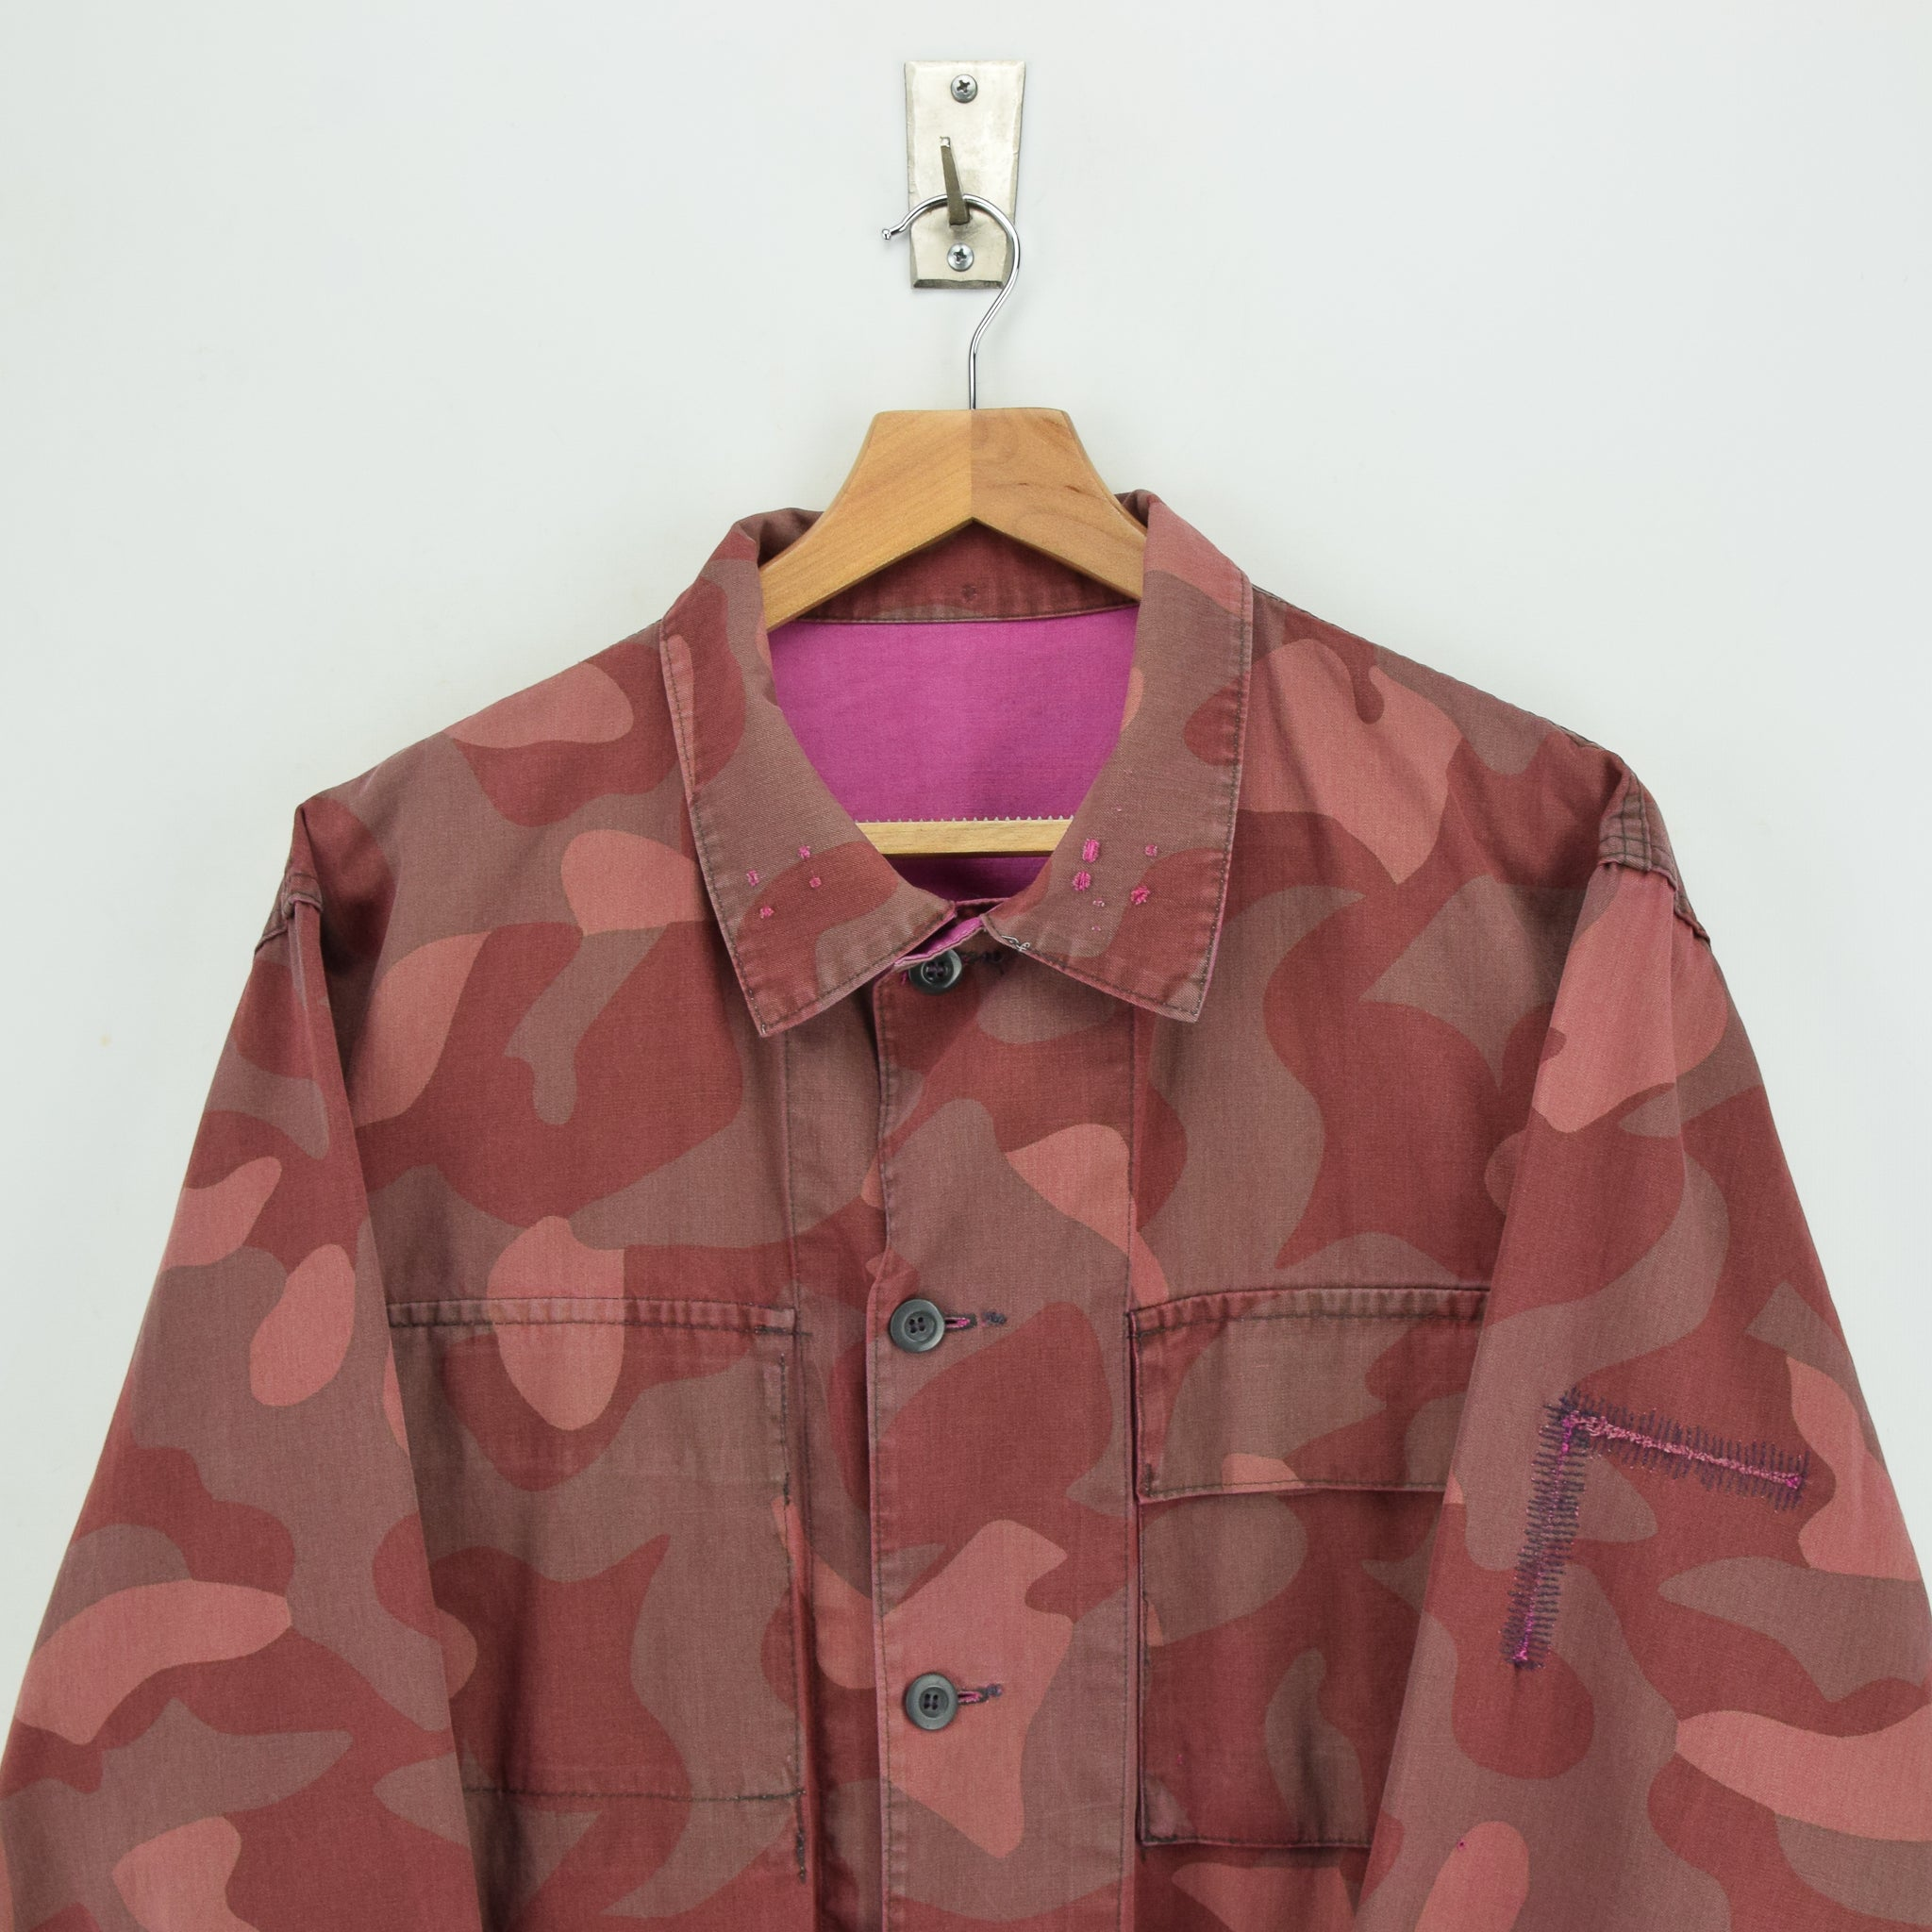 Vintage 70s Military Finnish Army Pink Overdyed Camo Mountain Field Jacket XL chest